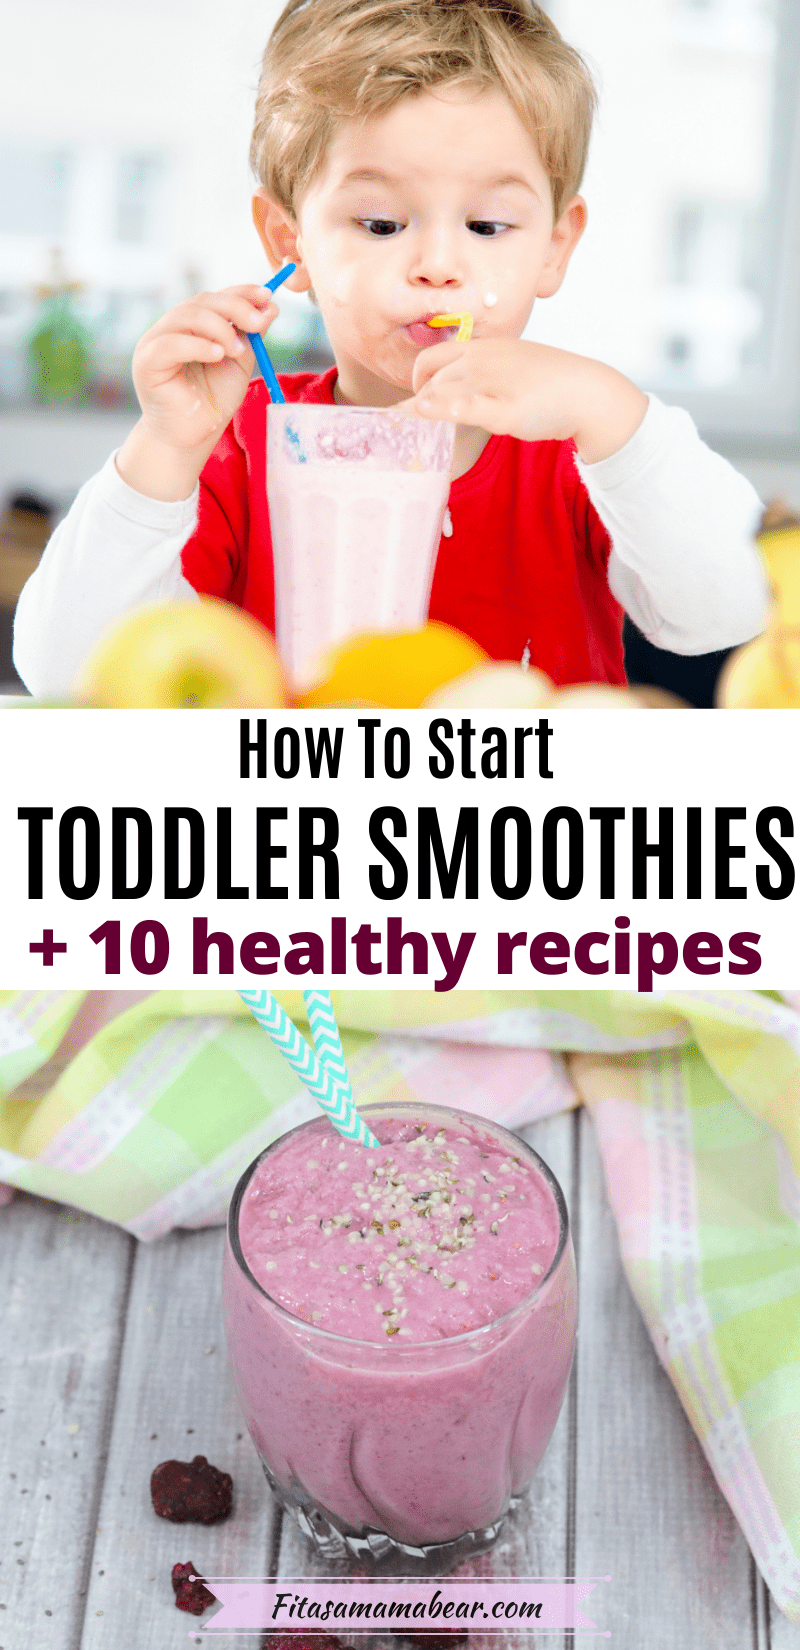 Pinterest image with text: two images, the top of a toddler boy sipping on a pink smoothie from a yellow and blue straw and the bottom of a pink smoothie in a glass with text about how to introduce smoothies to toddlers